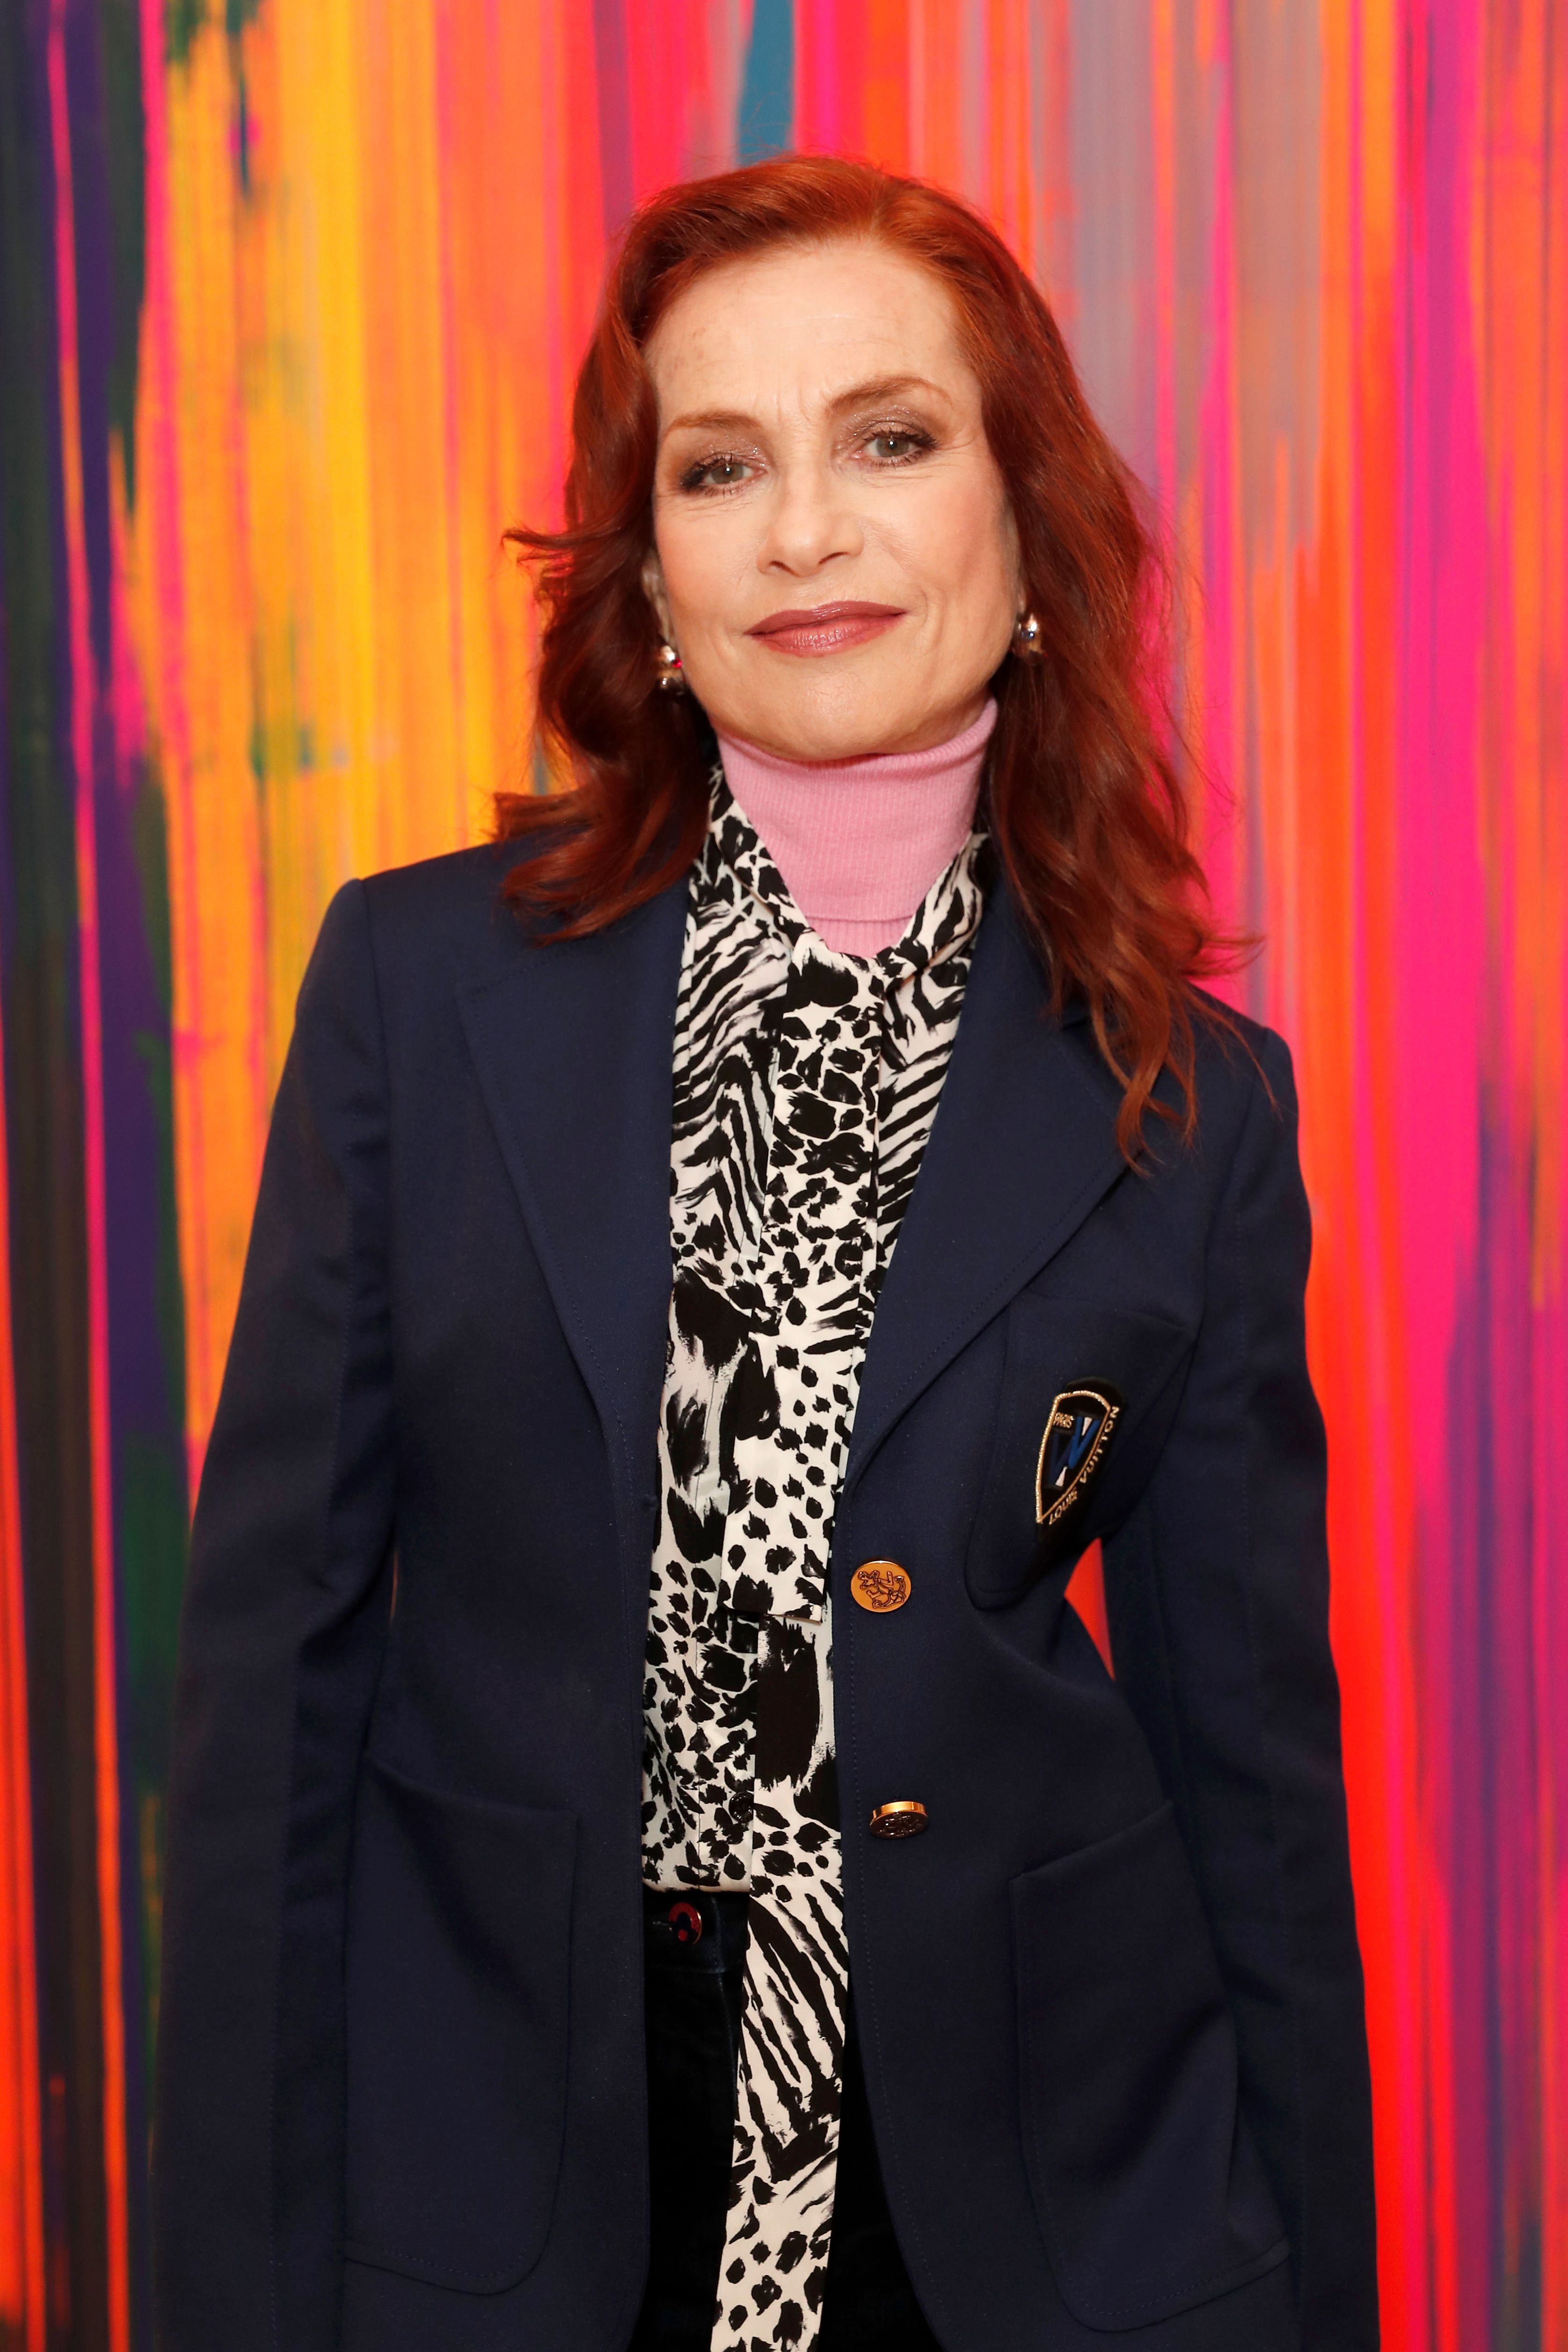 Isabelle Huppert, le 23 octobre 2019 à Londres, au Royaume-Uni. | Photo : Getty Images